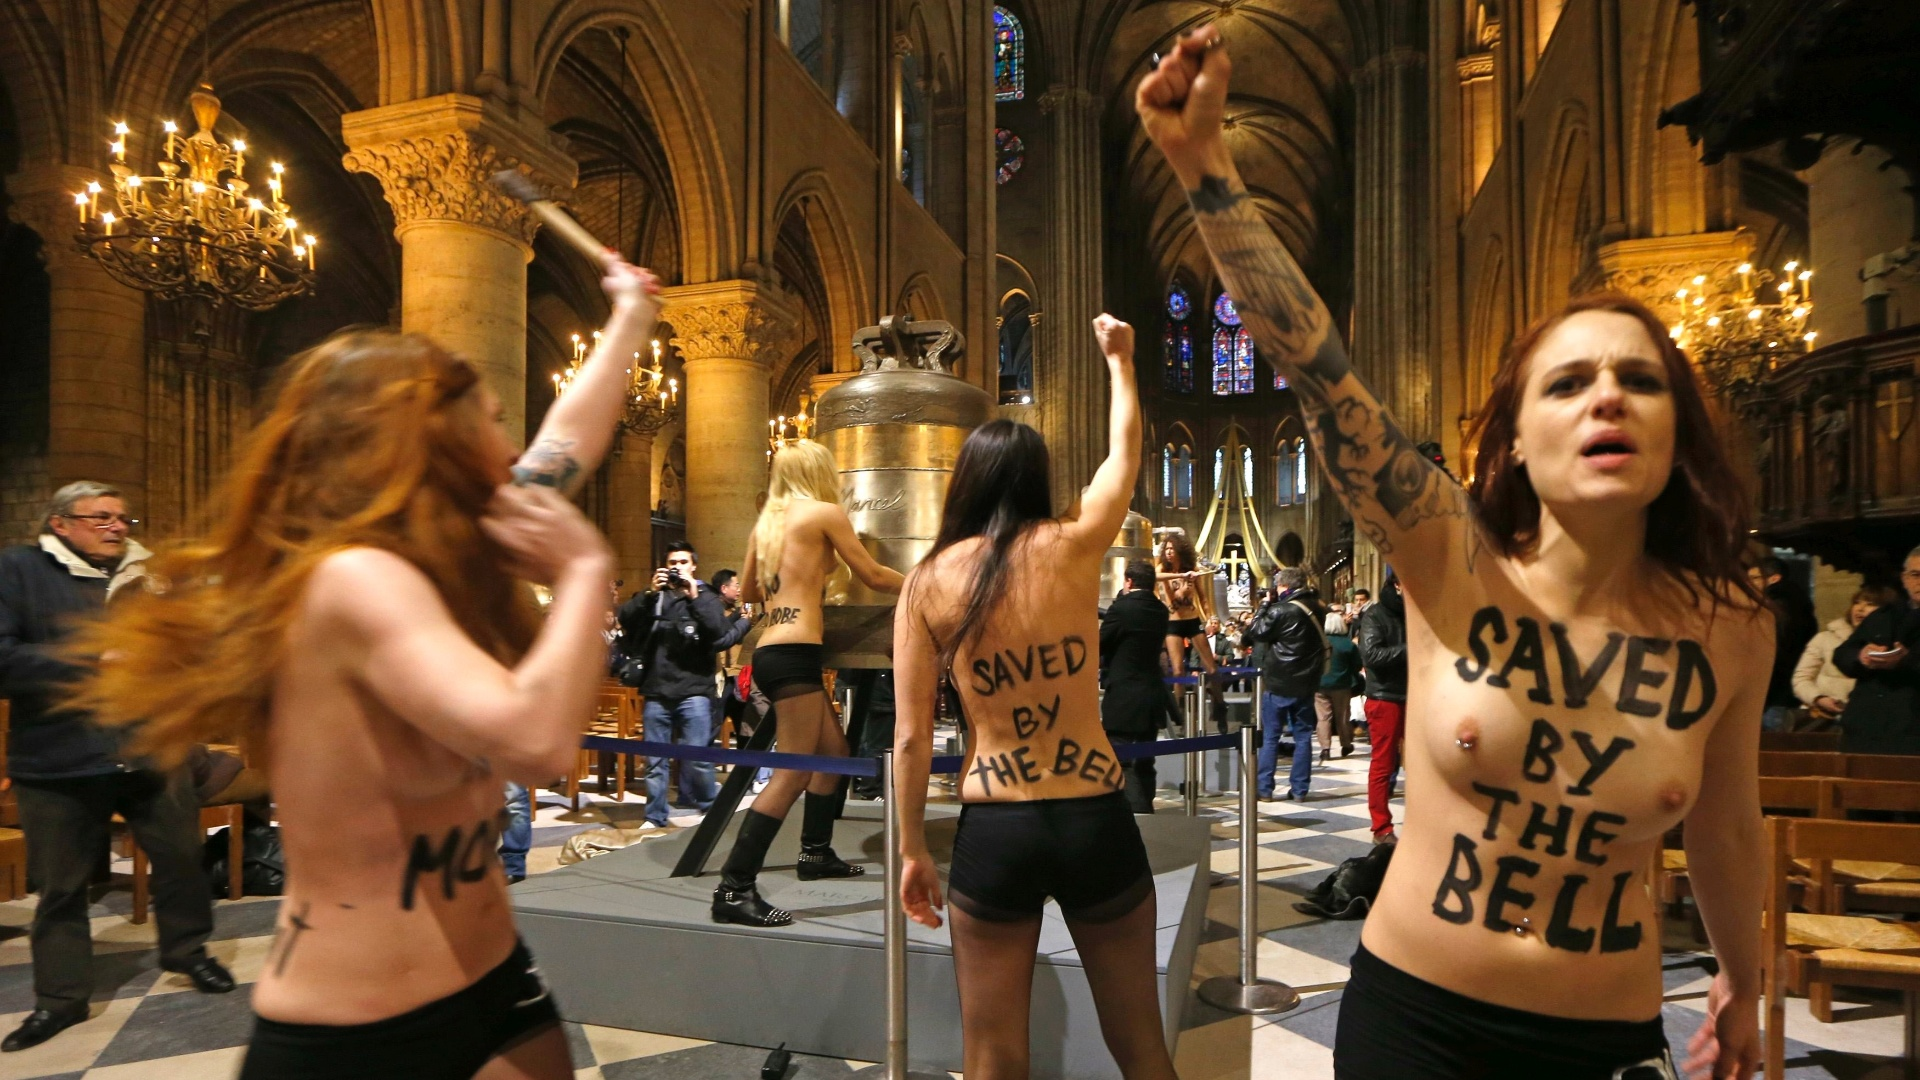 nude notre dame girls